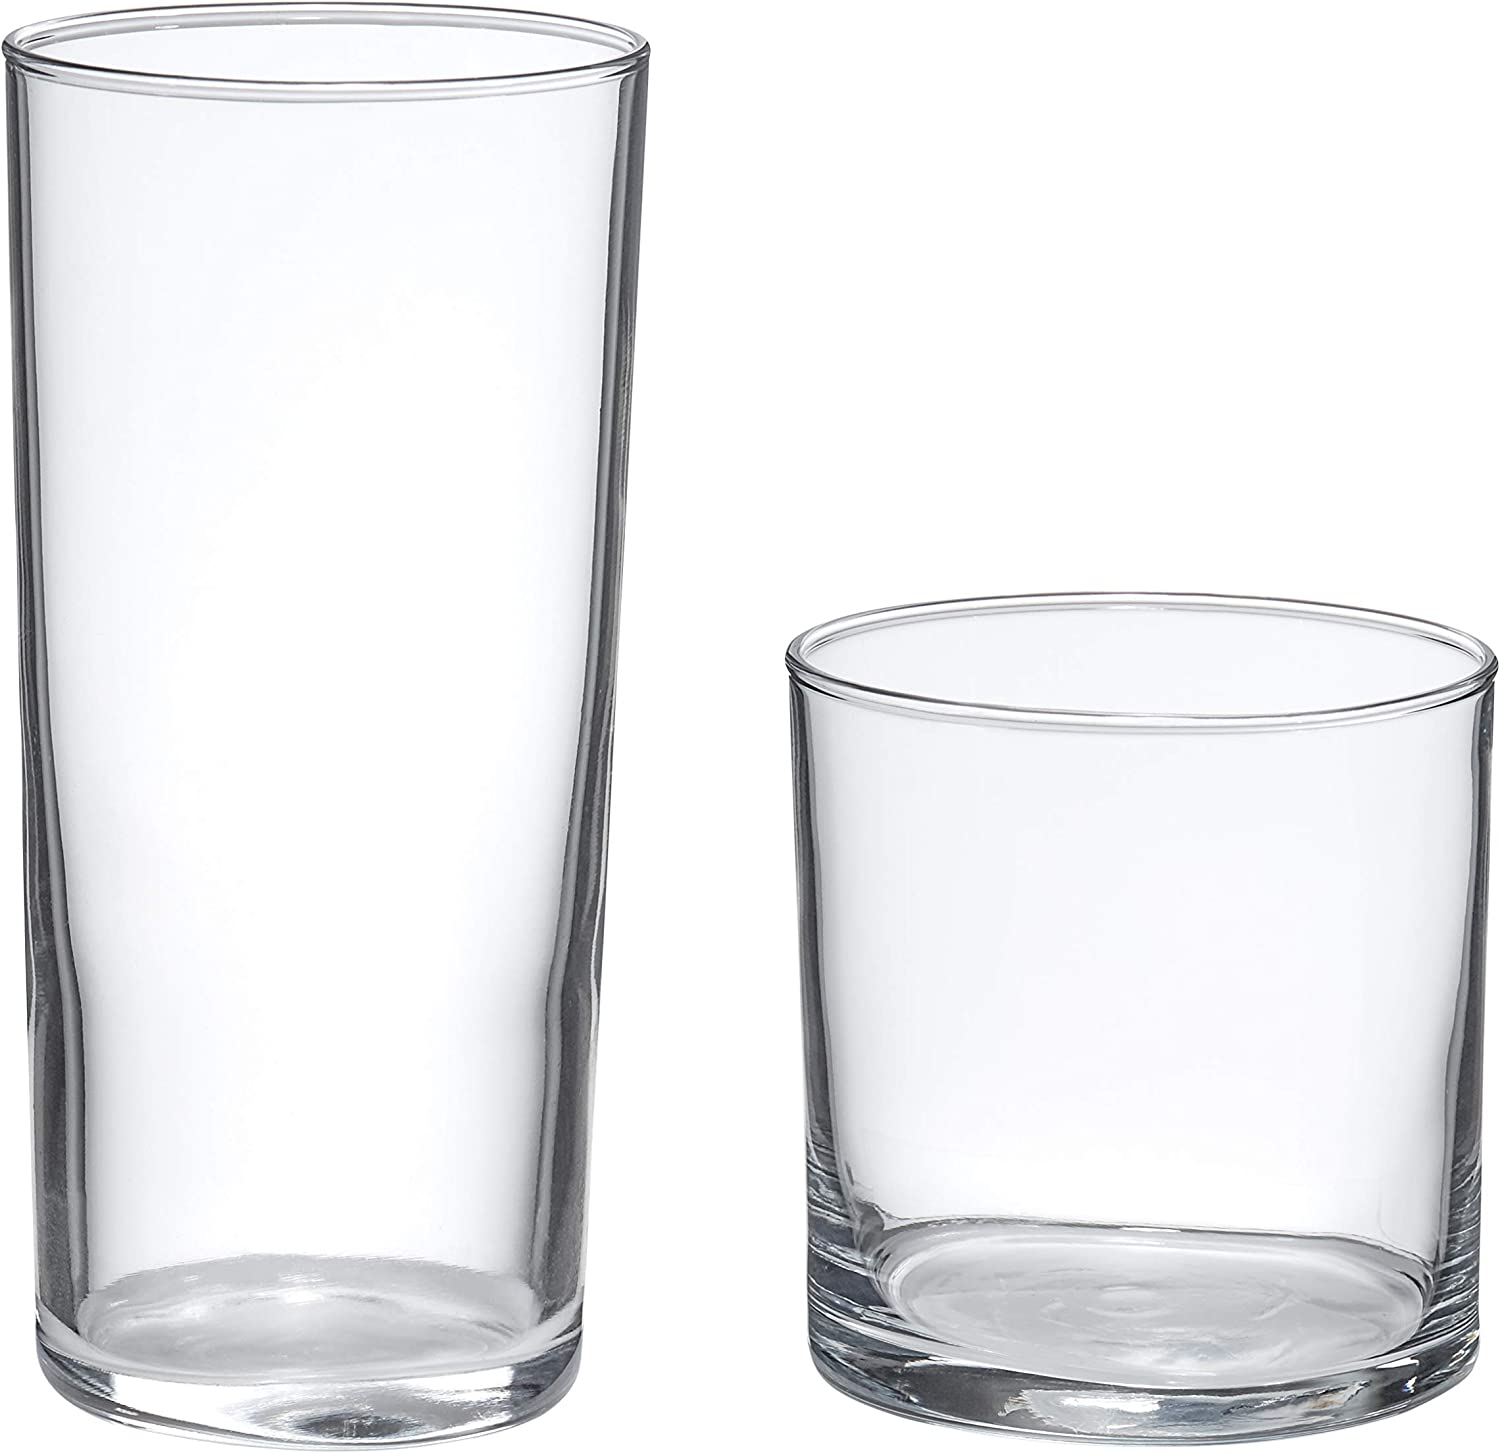 AmazonBasics Ridgecrest 16-Piece Old Fashioned and Coolers Glass Drinkware Set